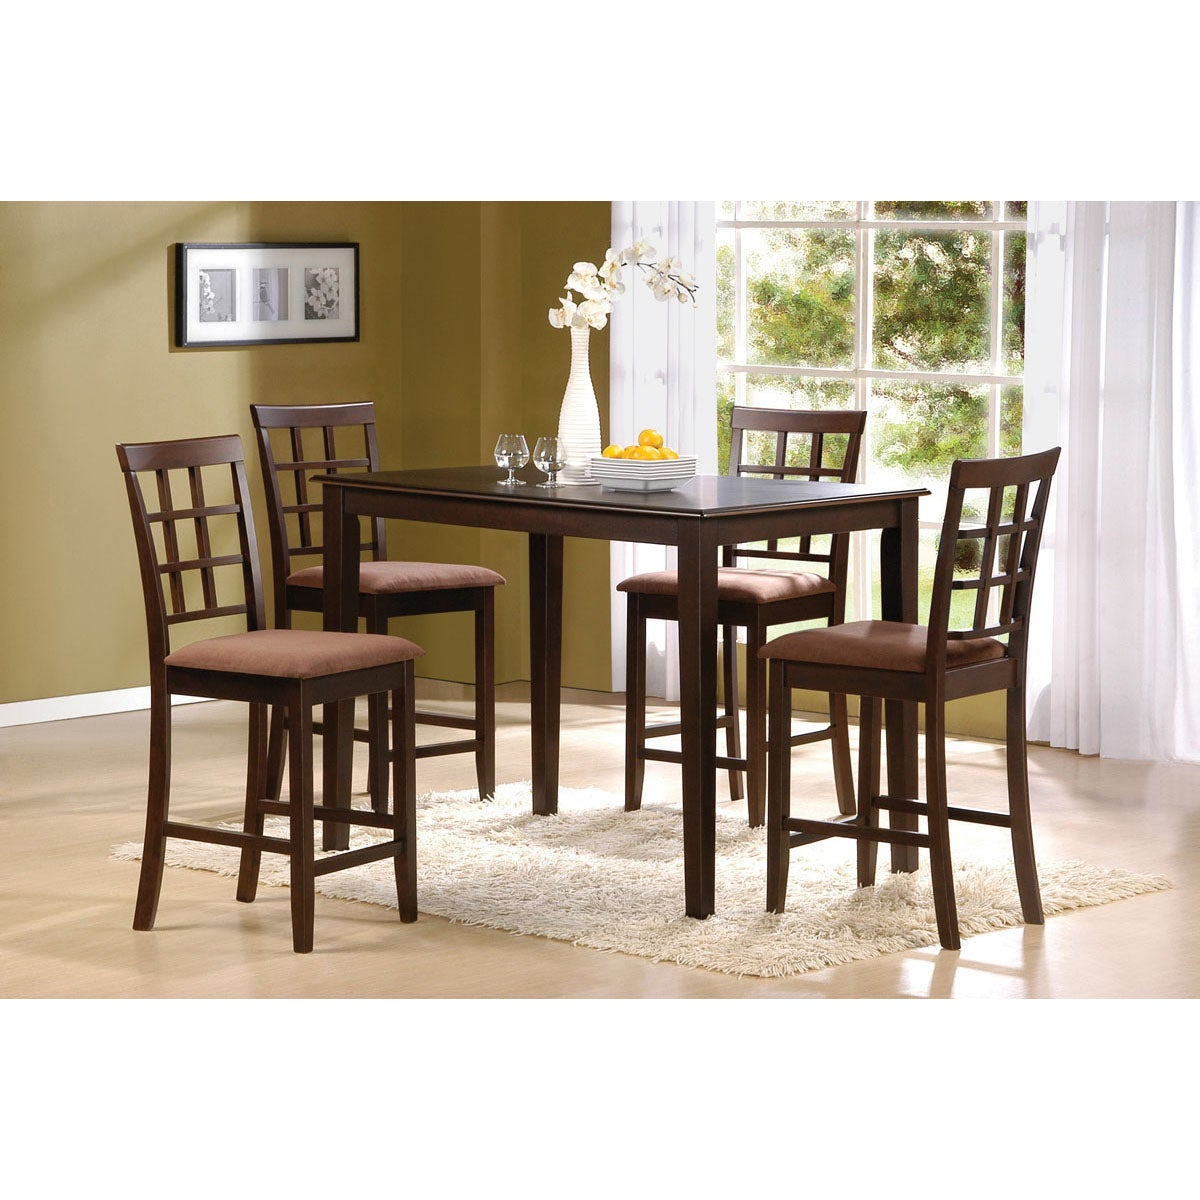 e870300a6e68d6 Shop Cardiff 5 Piece Espresso Finish Pack Counter Height Dining Table Set - Free  Shipping Today - Overstock - 6811617